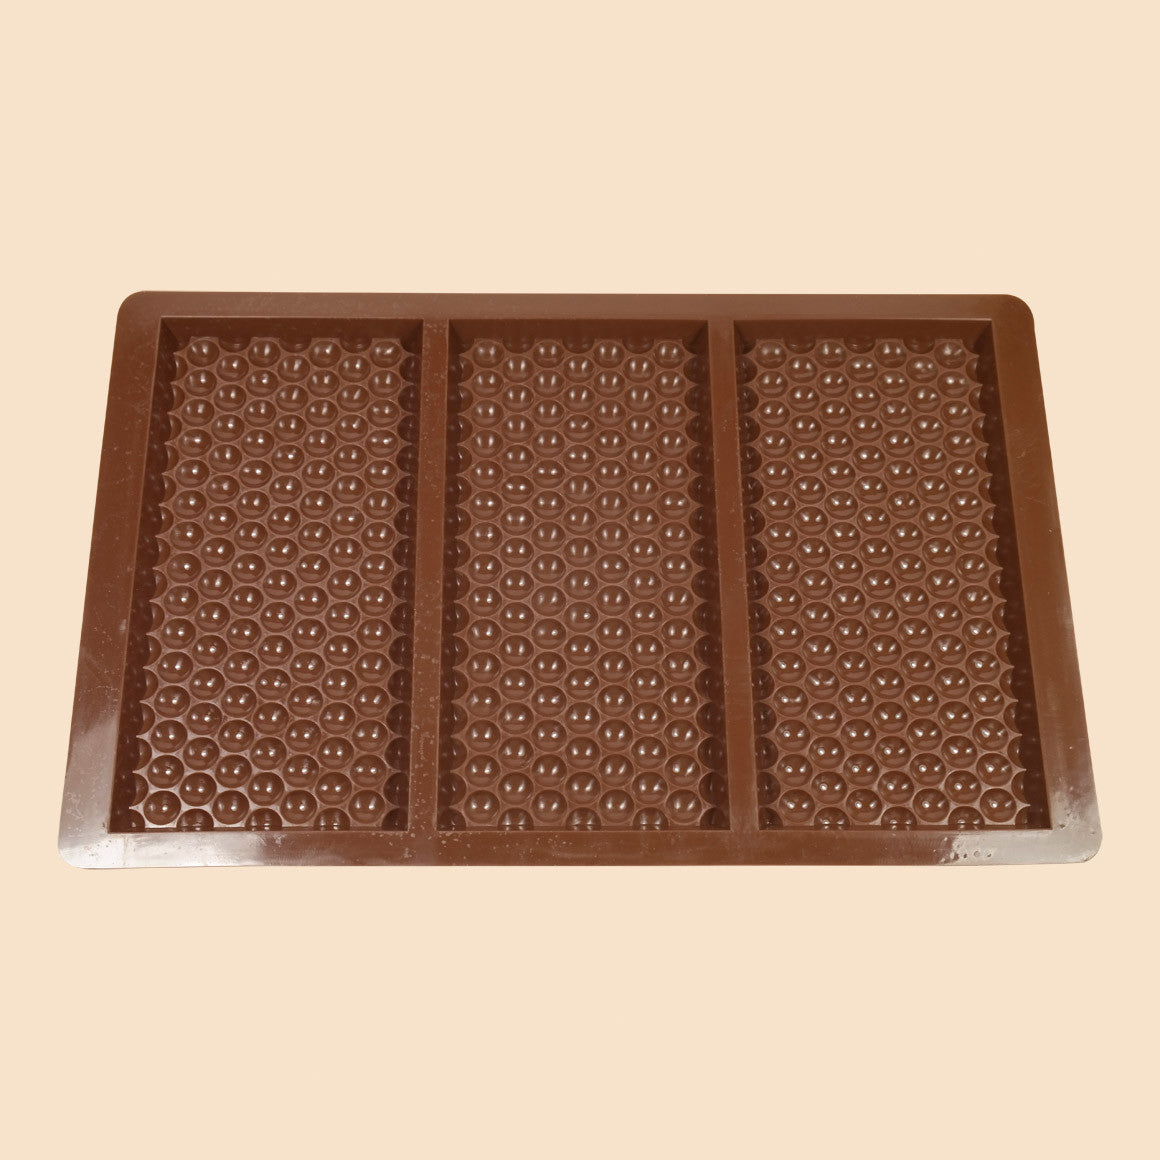 Silicone & Polycarbonate Chocolate Making Moulds   Elements